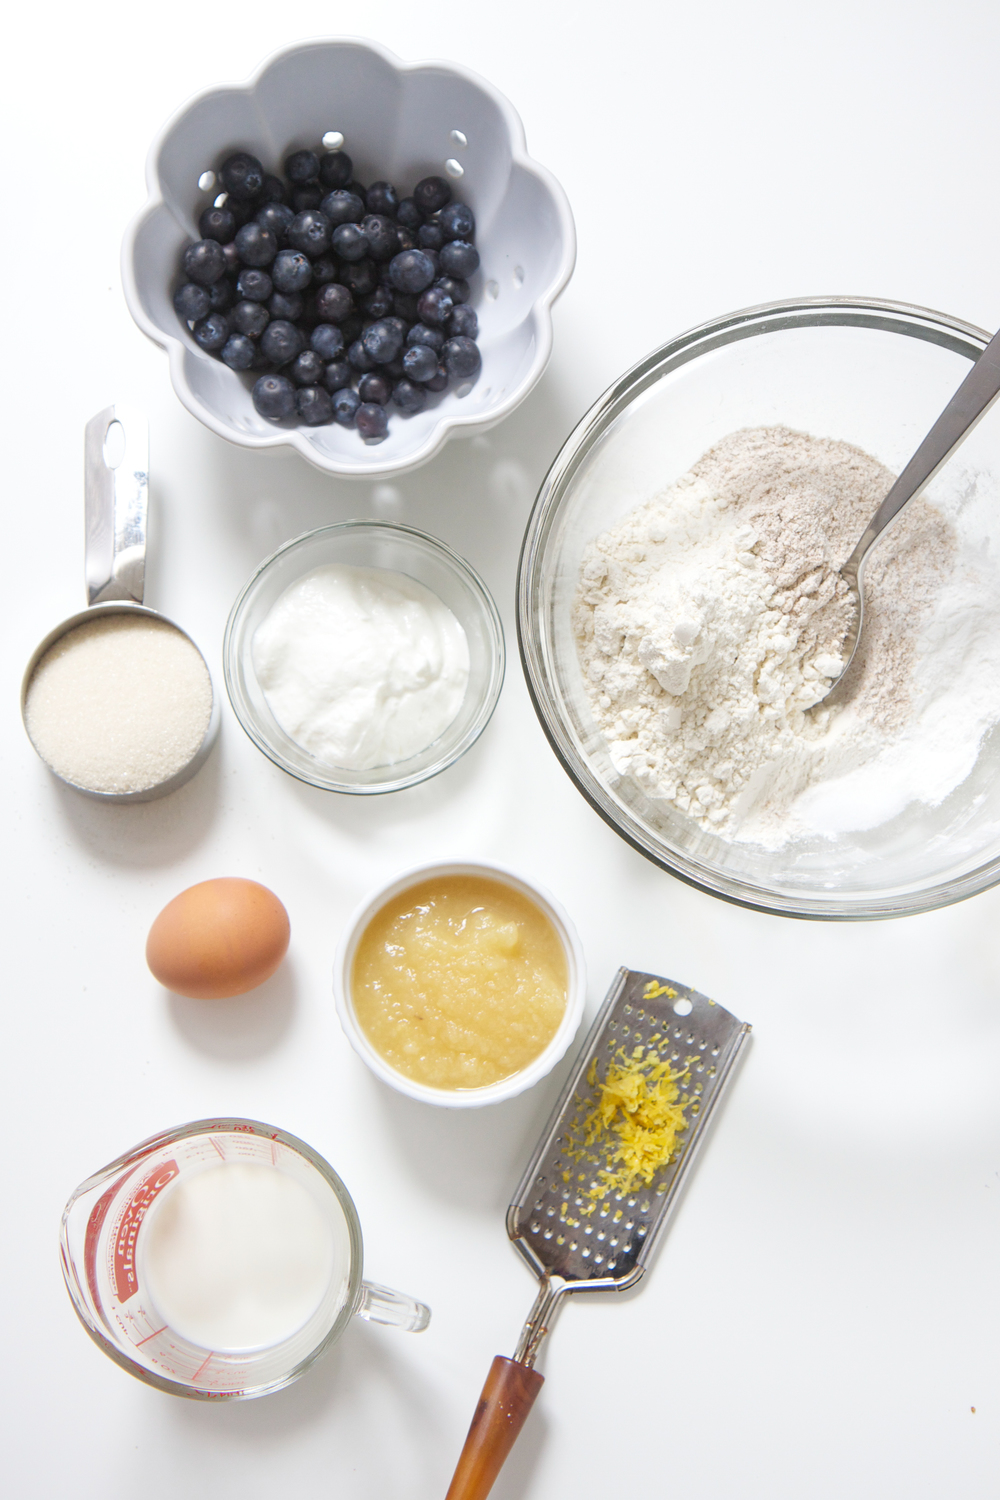 These healthy blueberry and lemon muffins are the perfect summer breakfast, snack or even a treat for your toddler or big kid! They're easy, delicious, healthy, and most importantly completely make ahead. Summer break breakfast winning! #muffins #toddlers